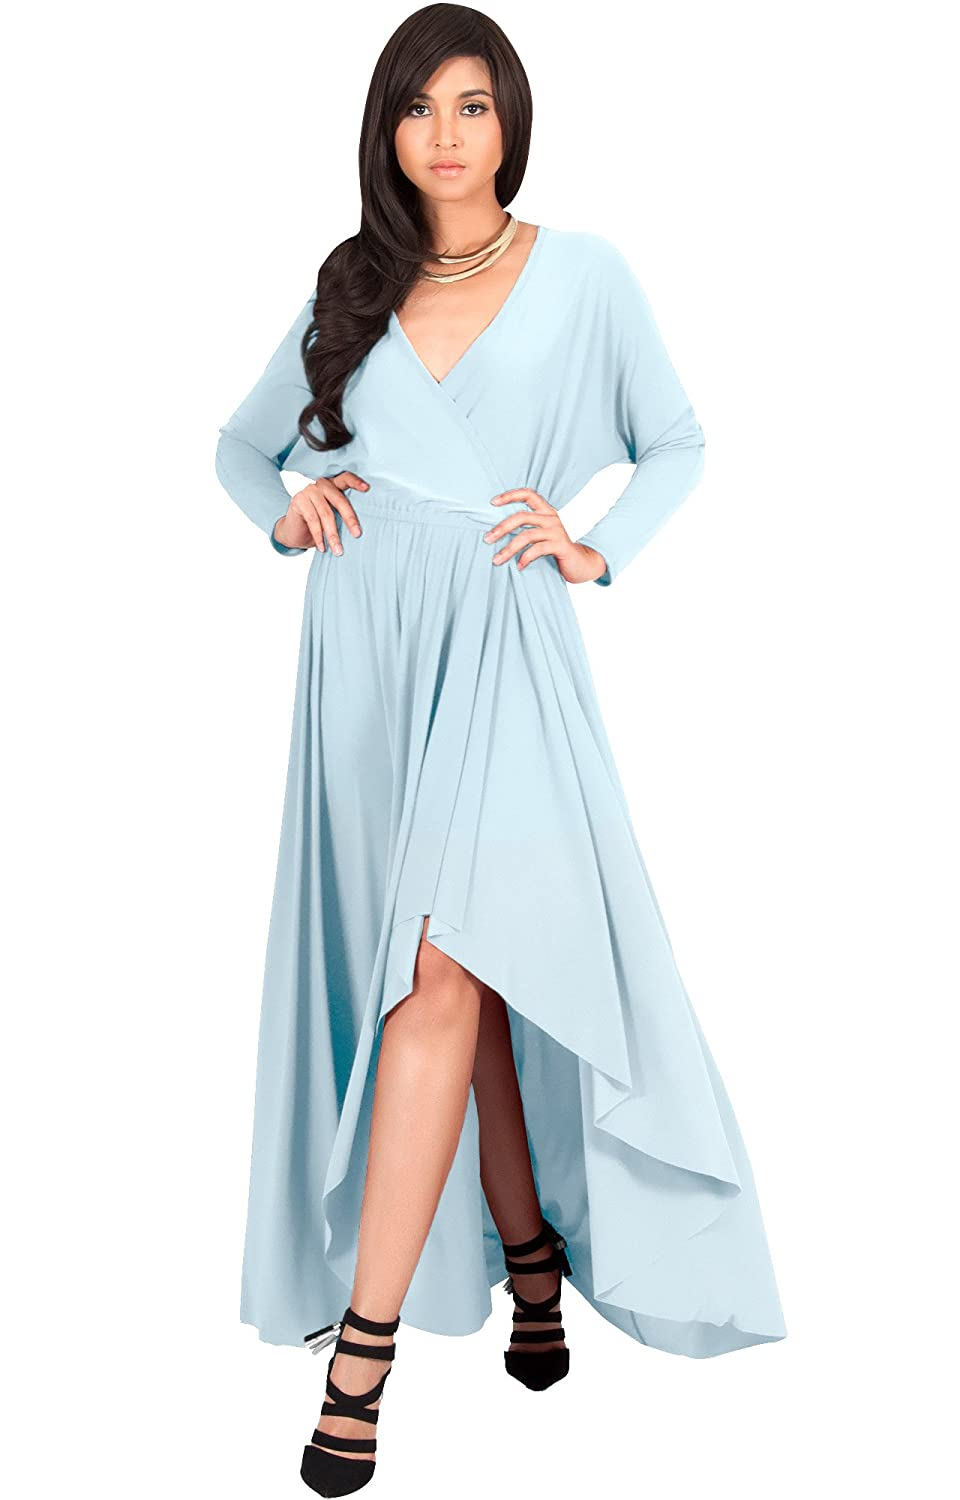 c72aabde99d GARMENT CARE - Hand or machine washable. Can be dry-cleaned if desired.  PLUS SIZE - This great maxi dress design is also available in plus sizes